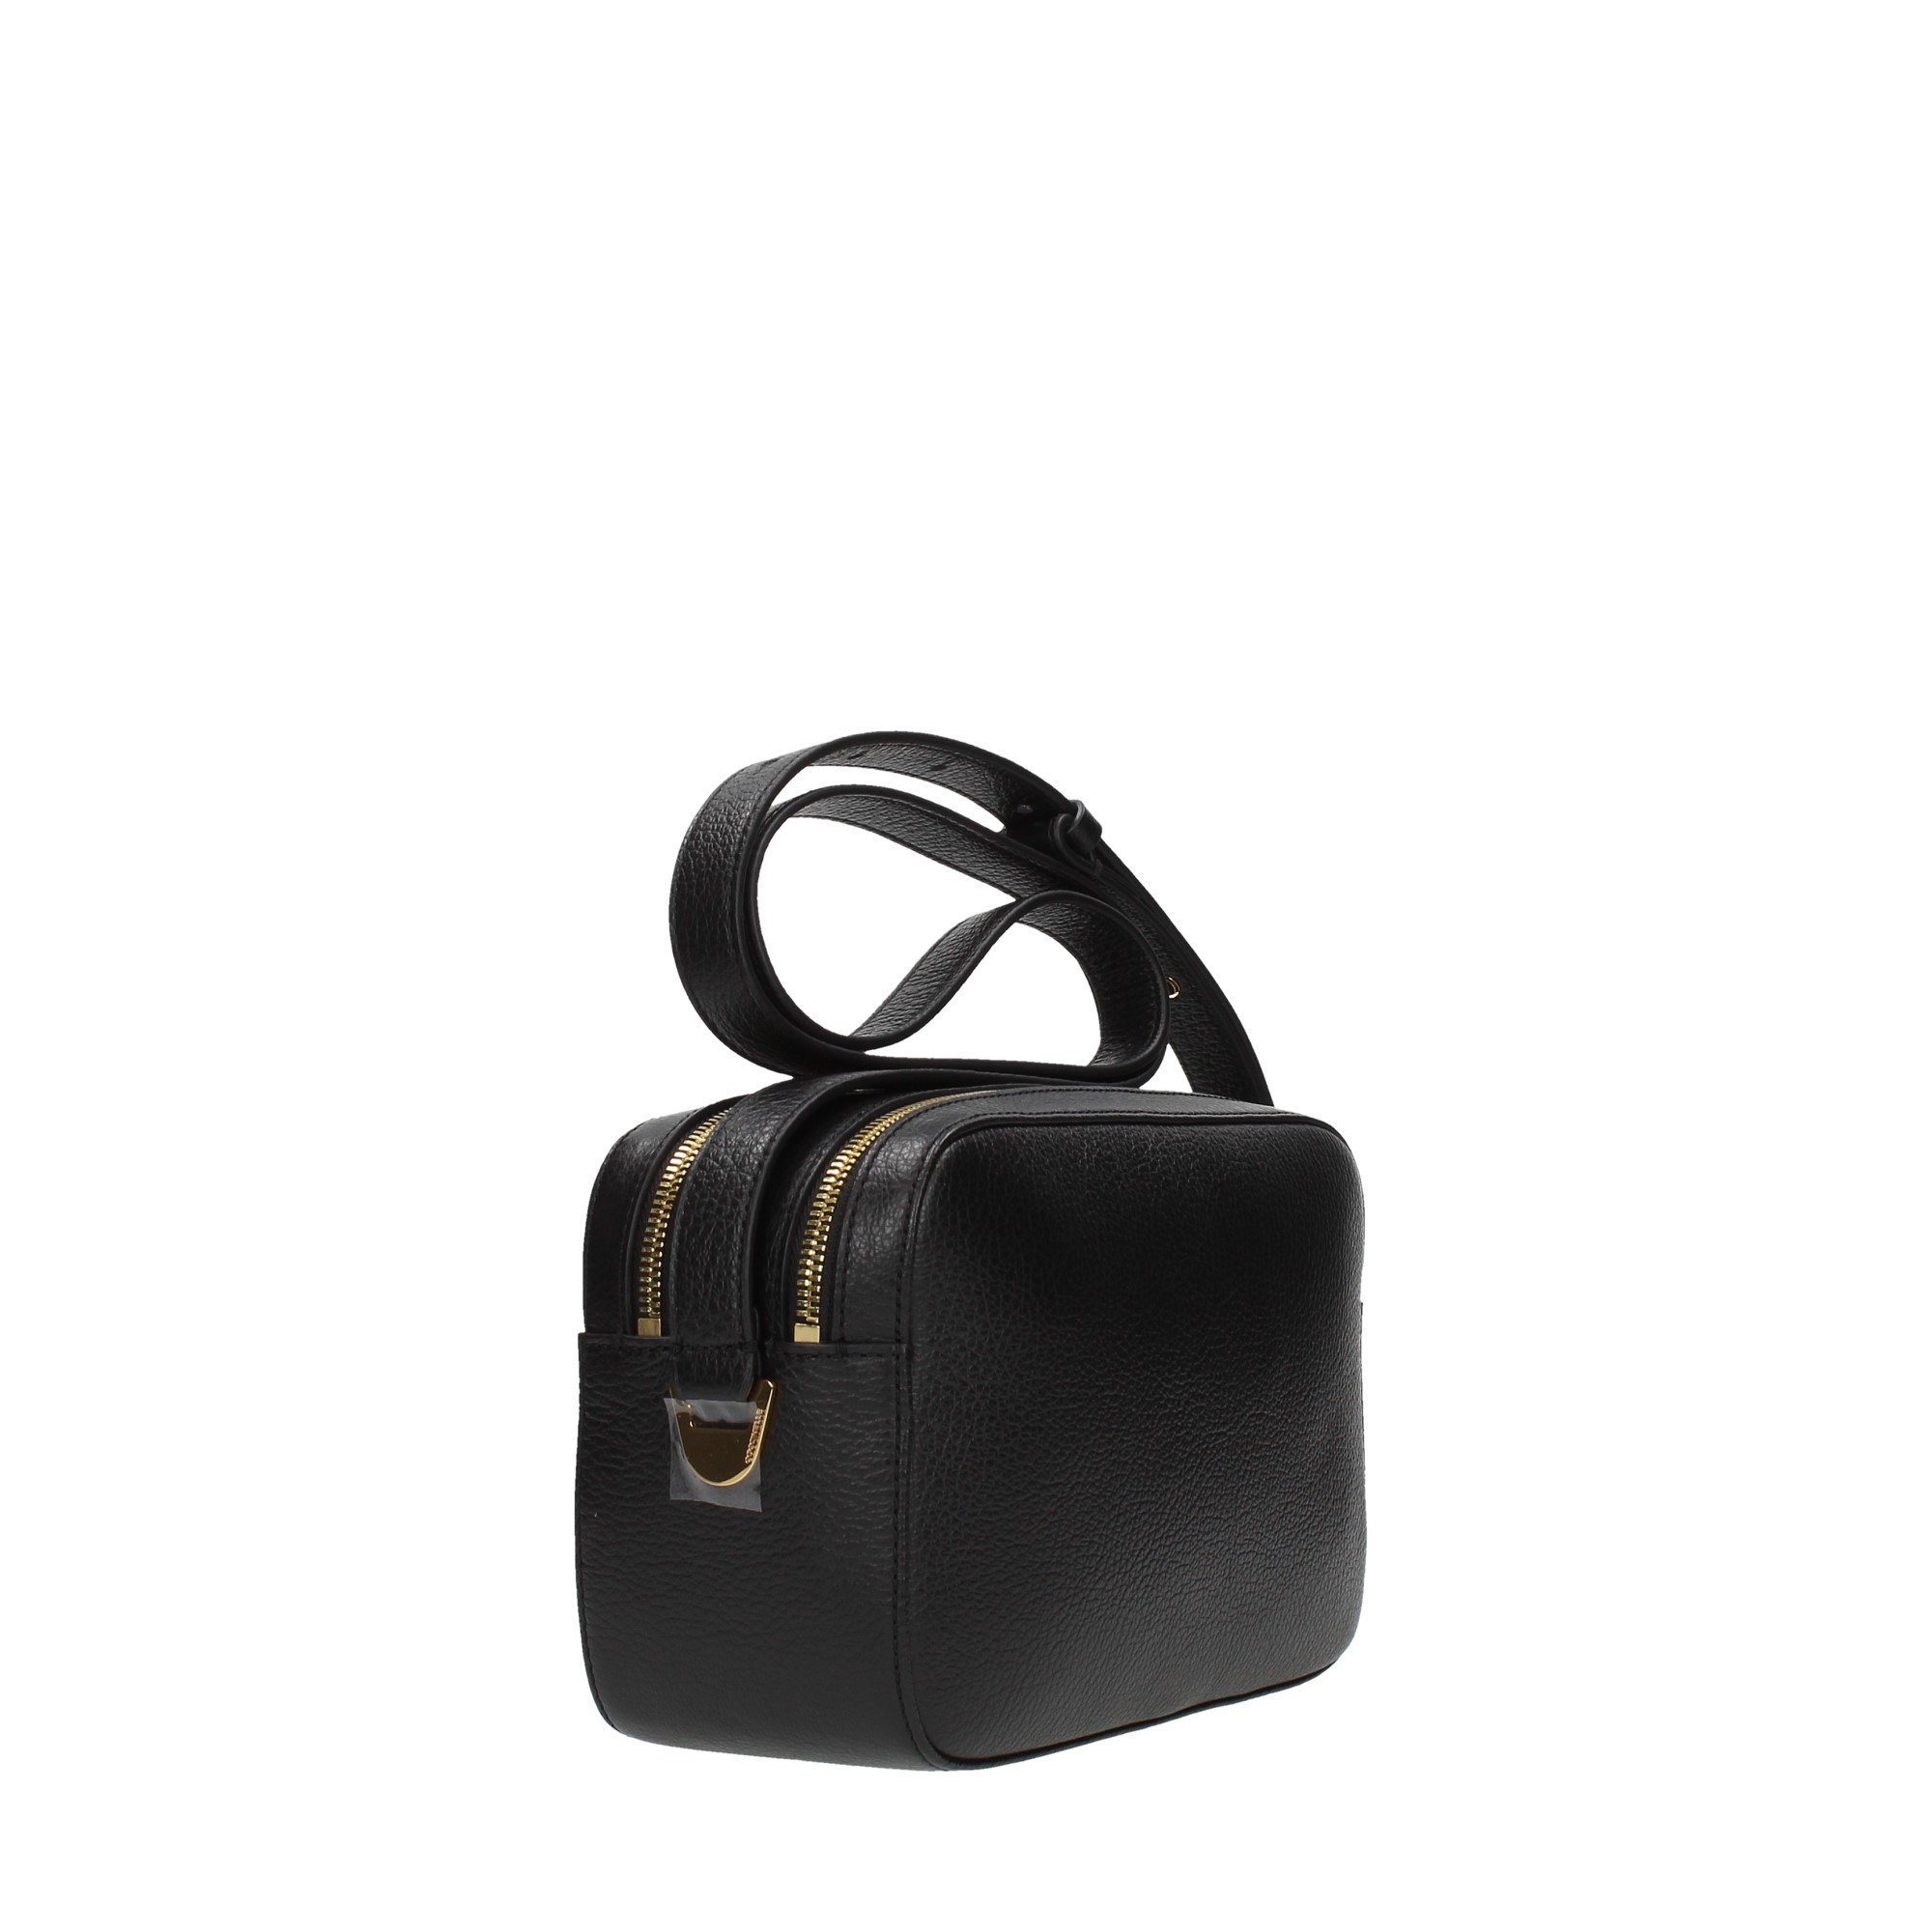 Coccinelle Accessories Women Shoulder Bags Black H60 150201